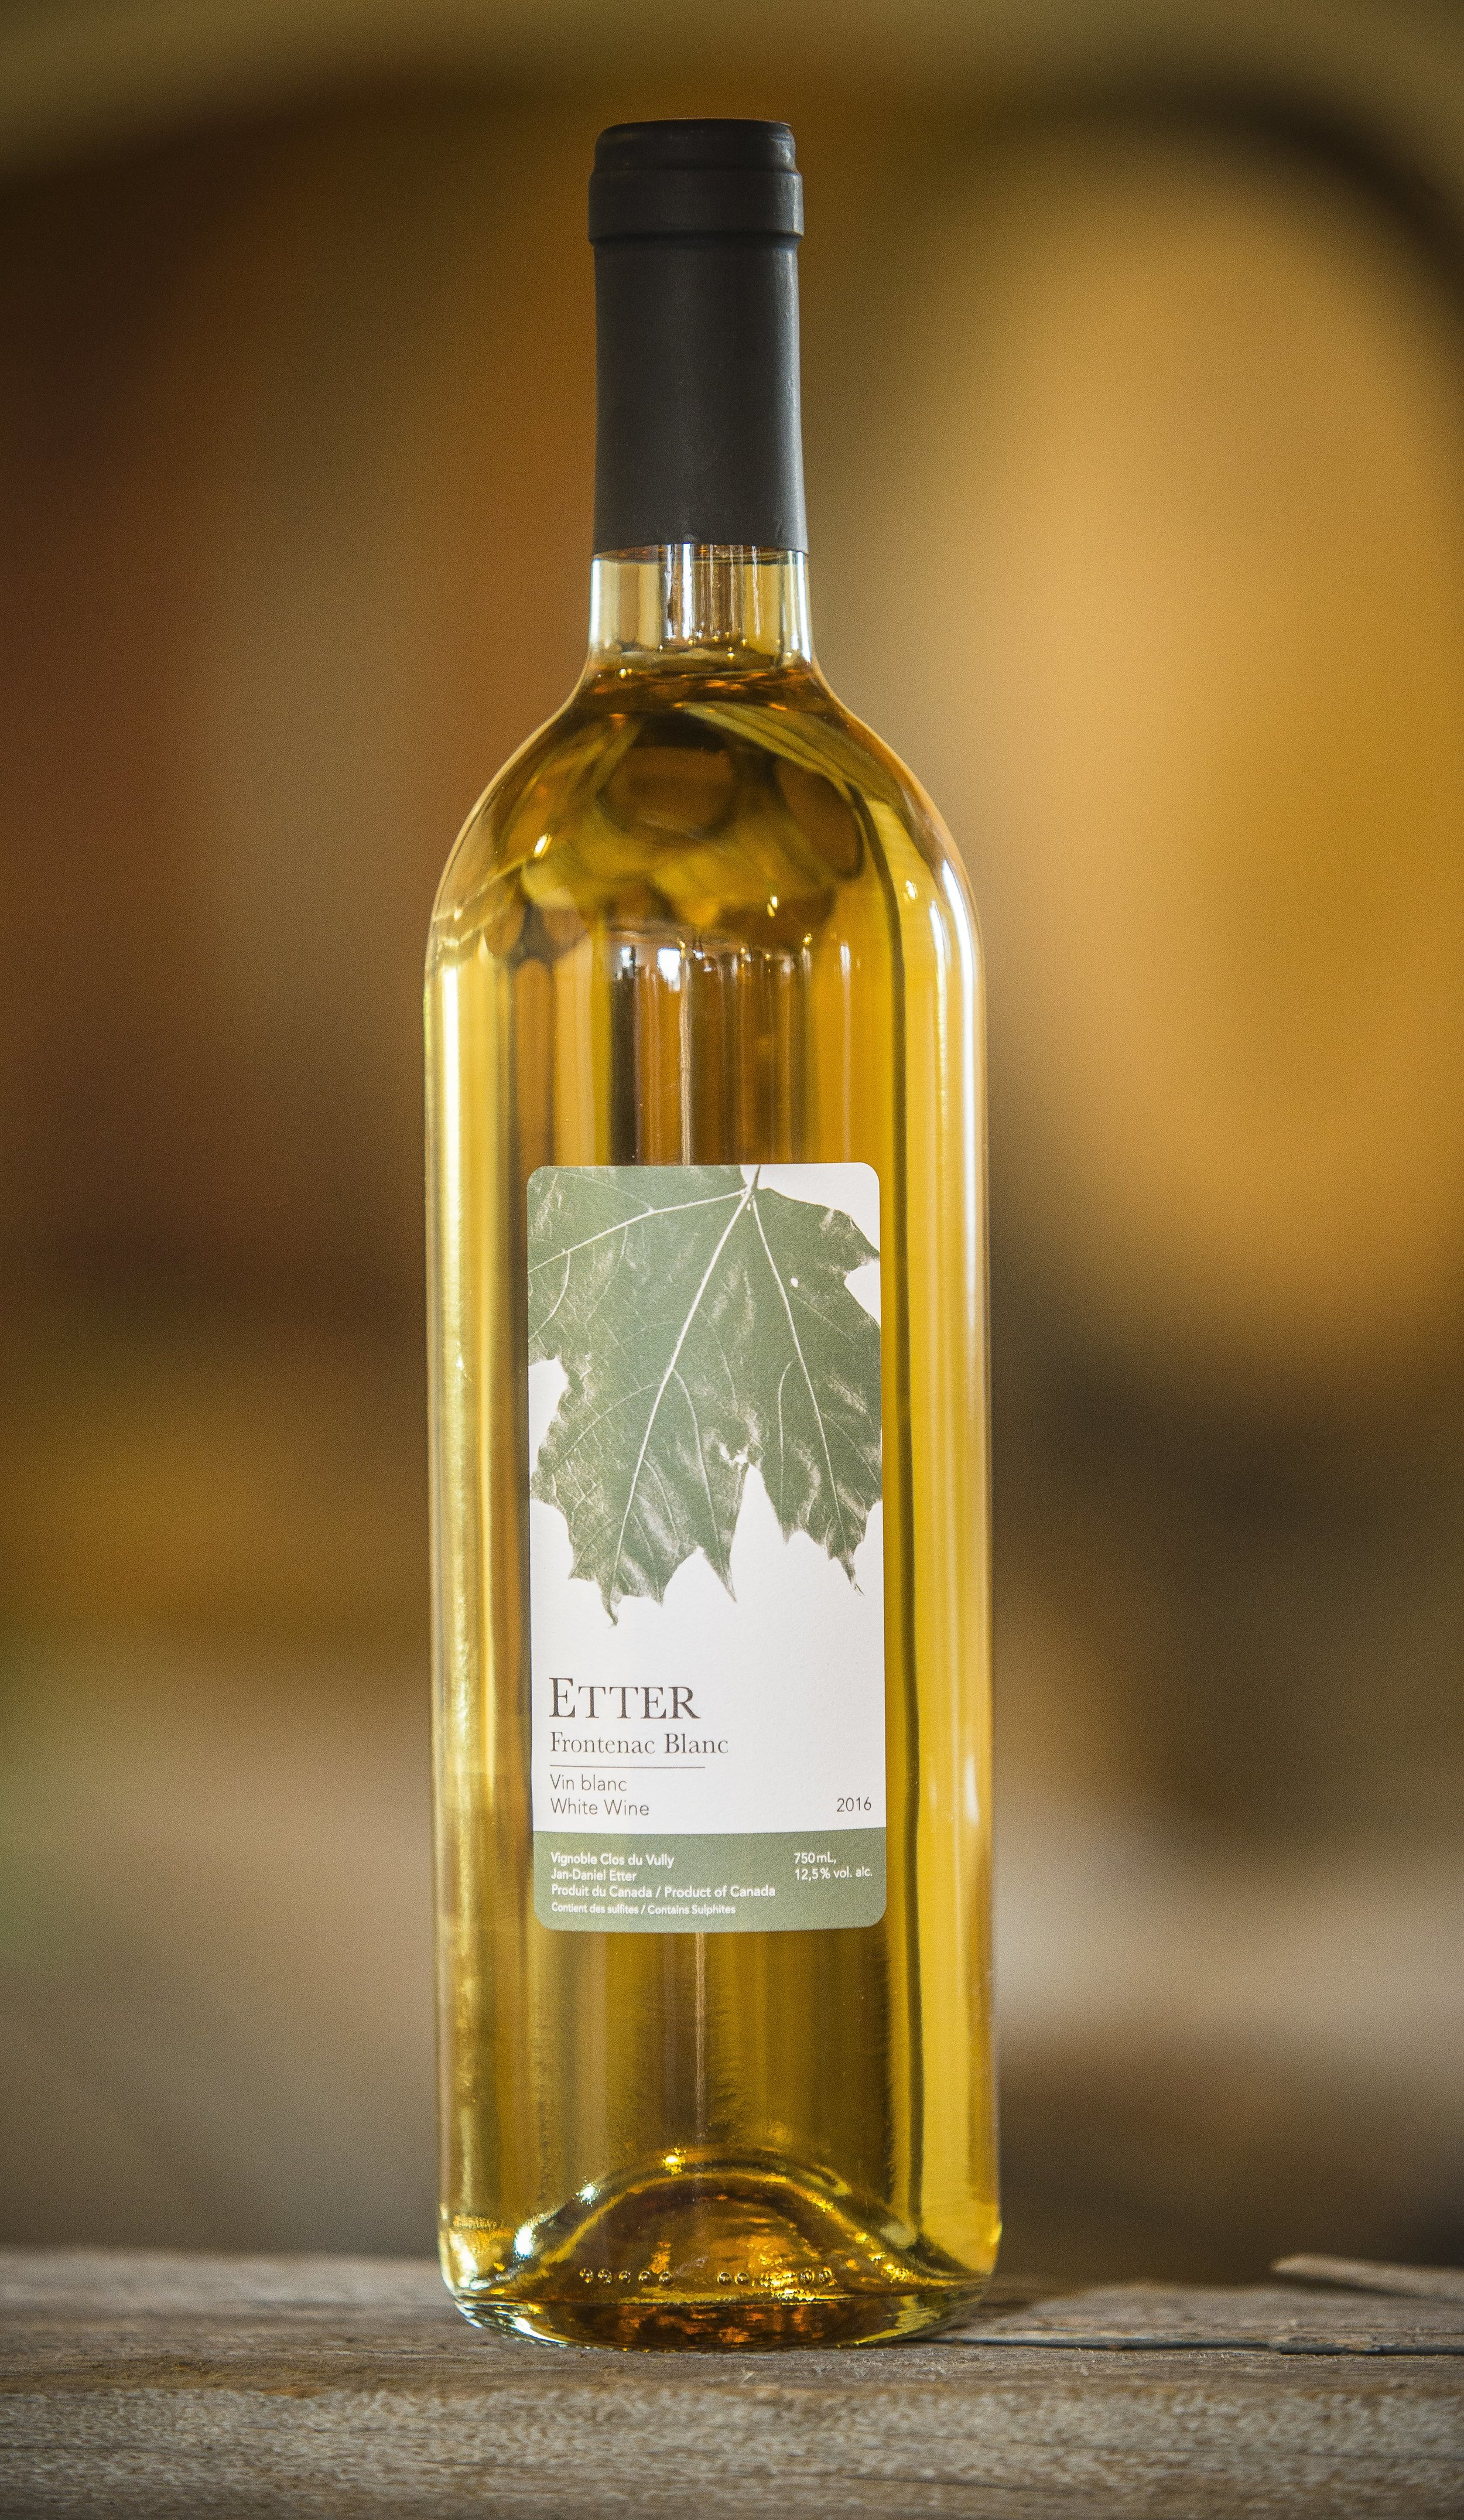 Frontenac Blanc 2017 - · 90% estate grapes Frontenac Blanc and Frontenac Gris· 10% Riesling· Honey, pineapple and pear aromas$18.50 incl tax